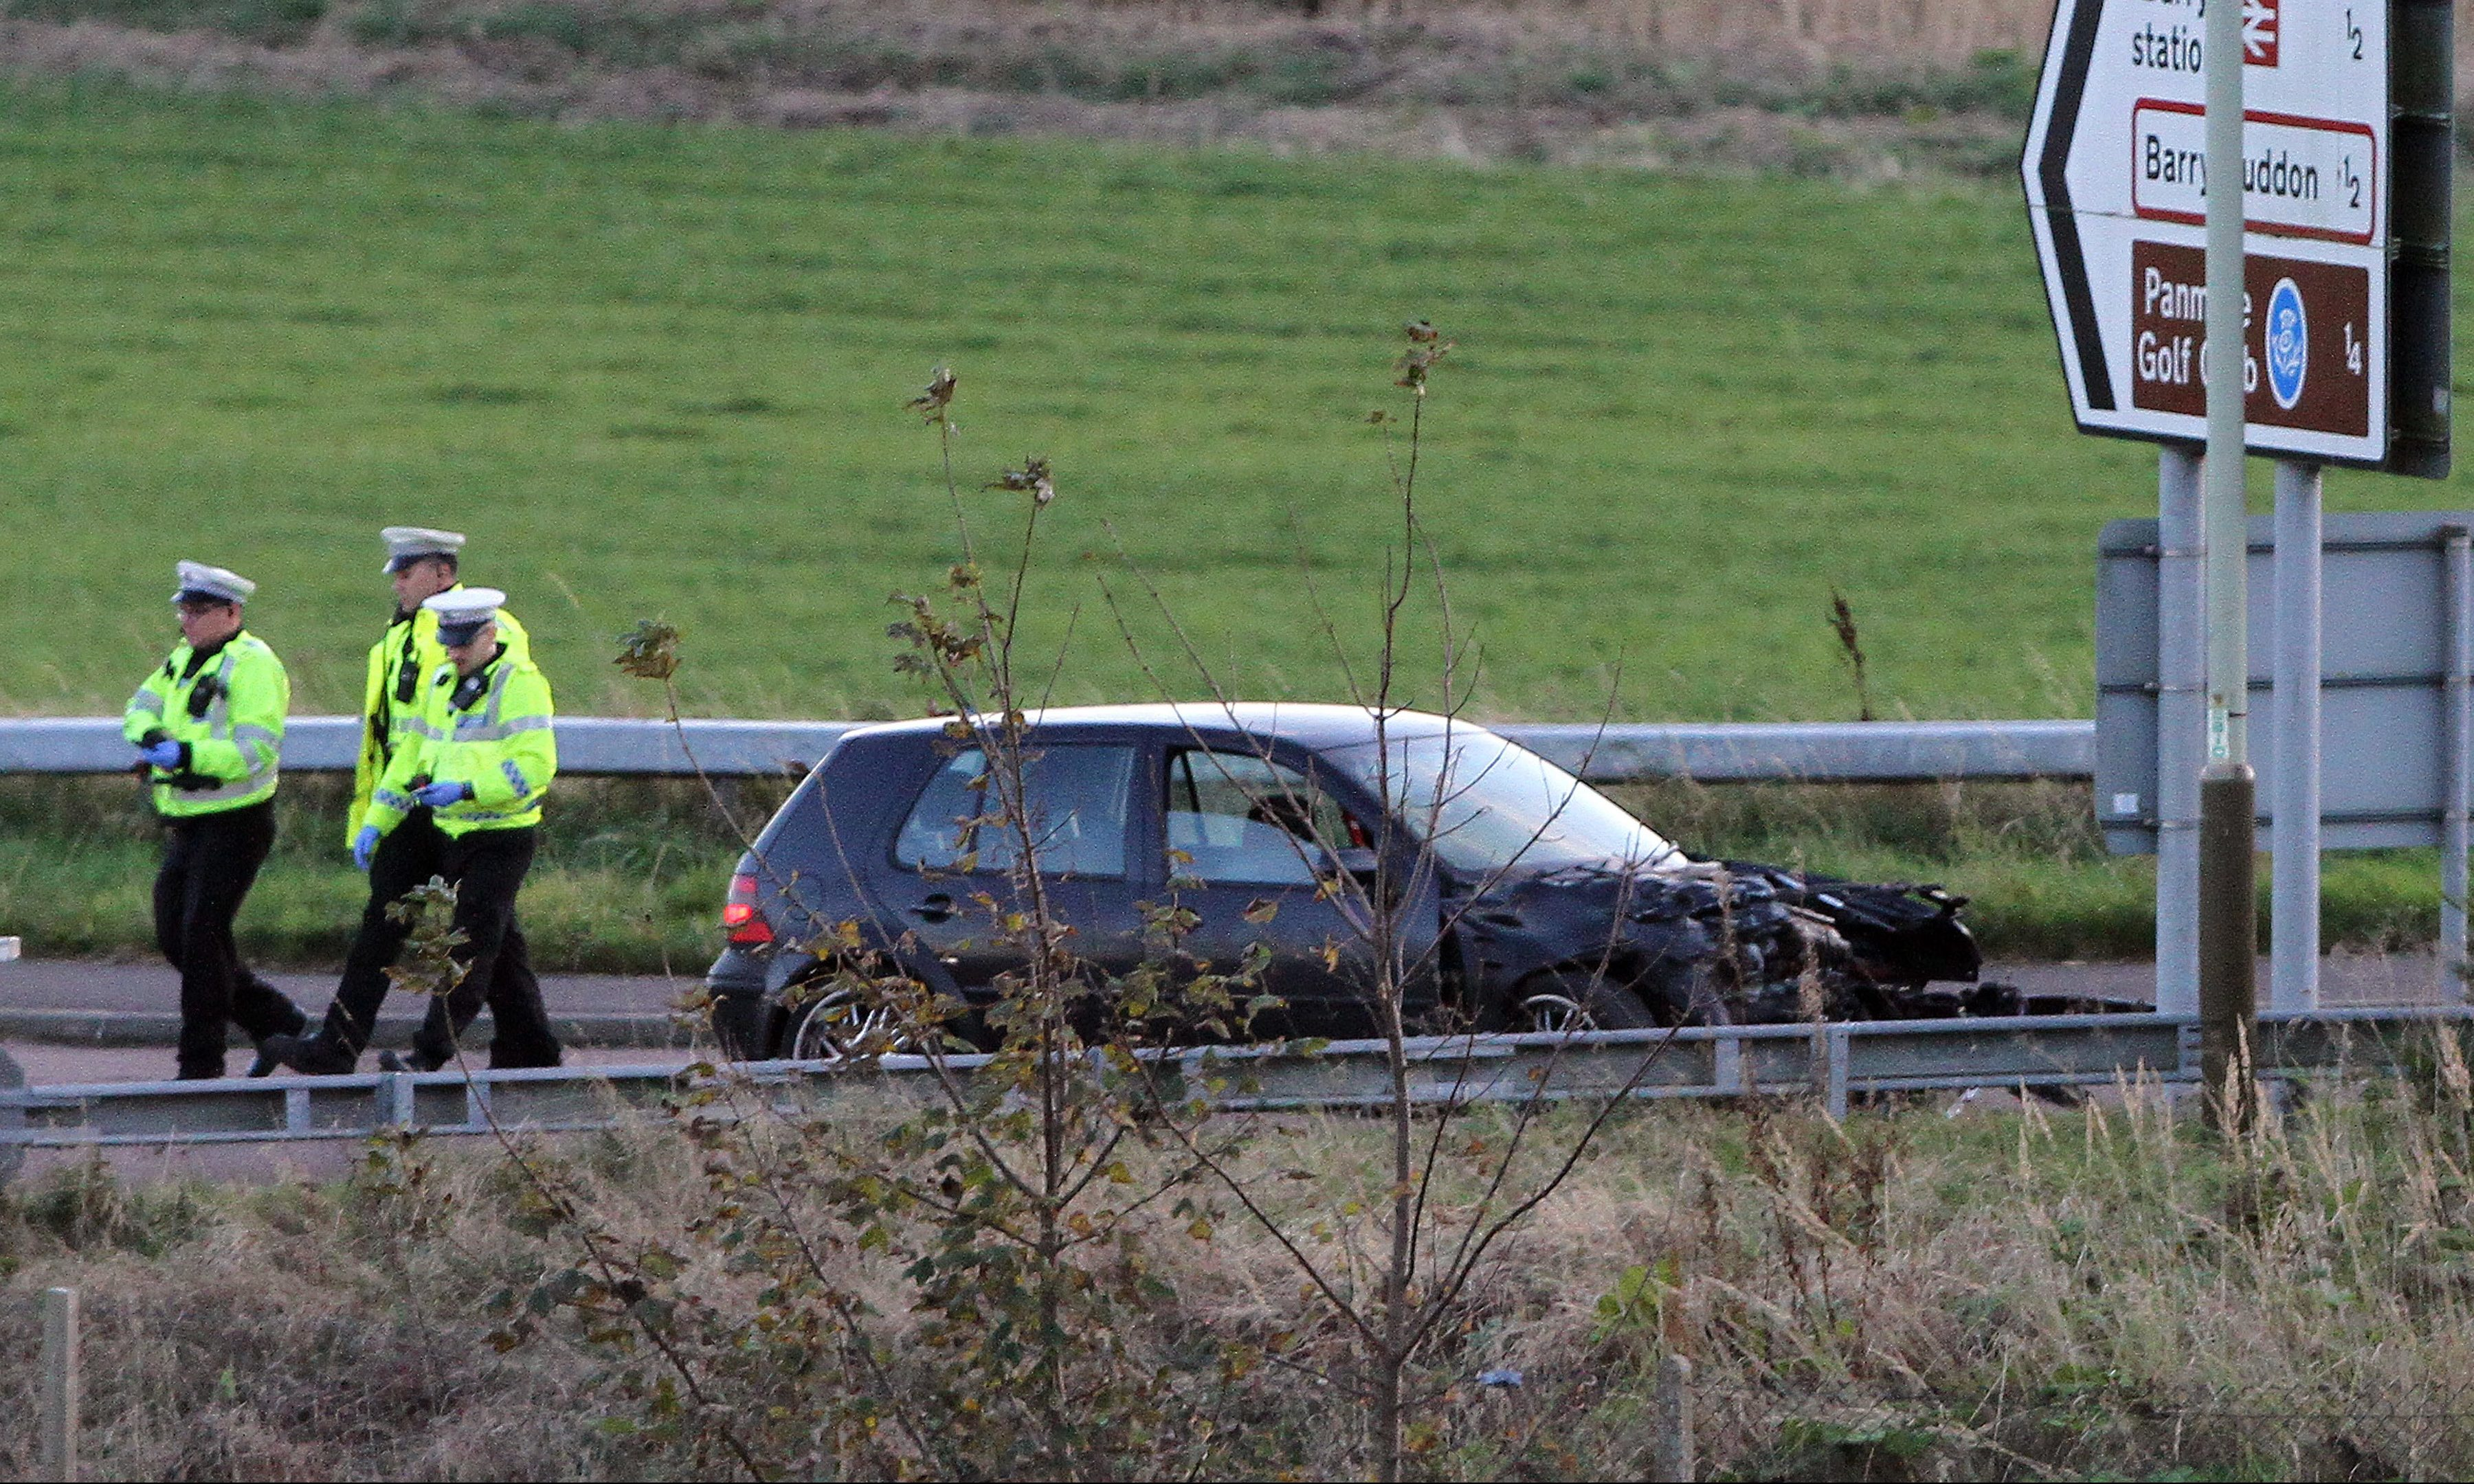 The car involved in the accident on the Barry bypass.